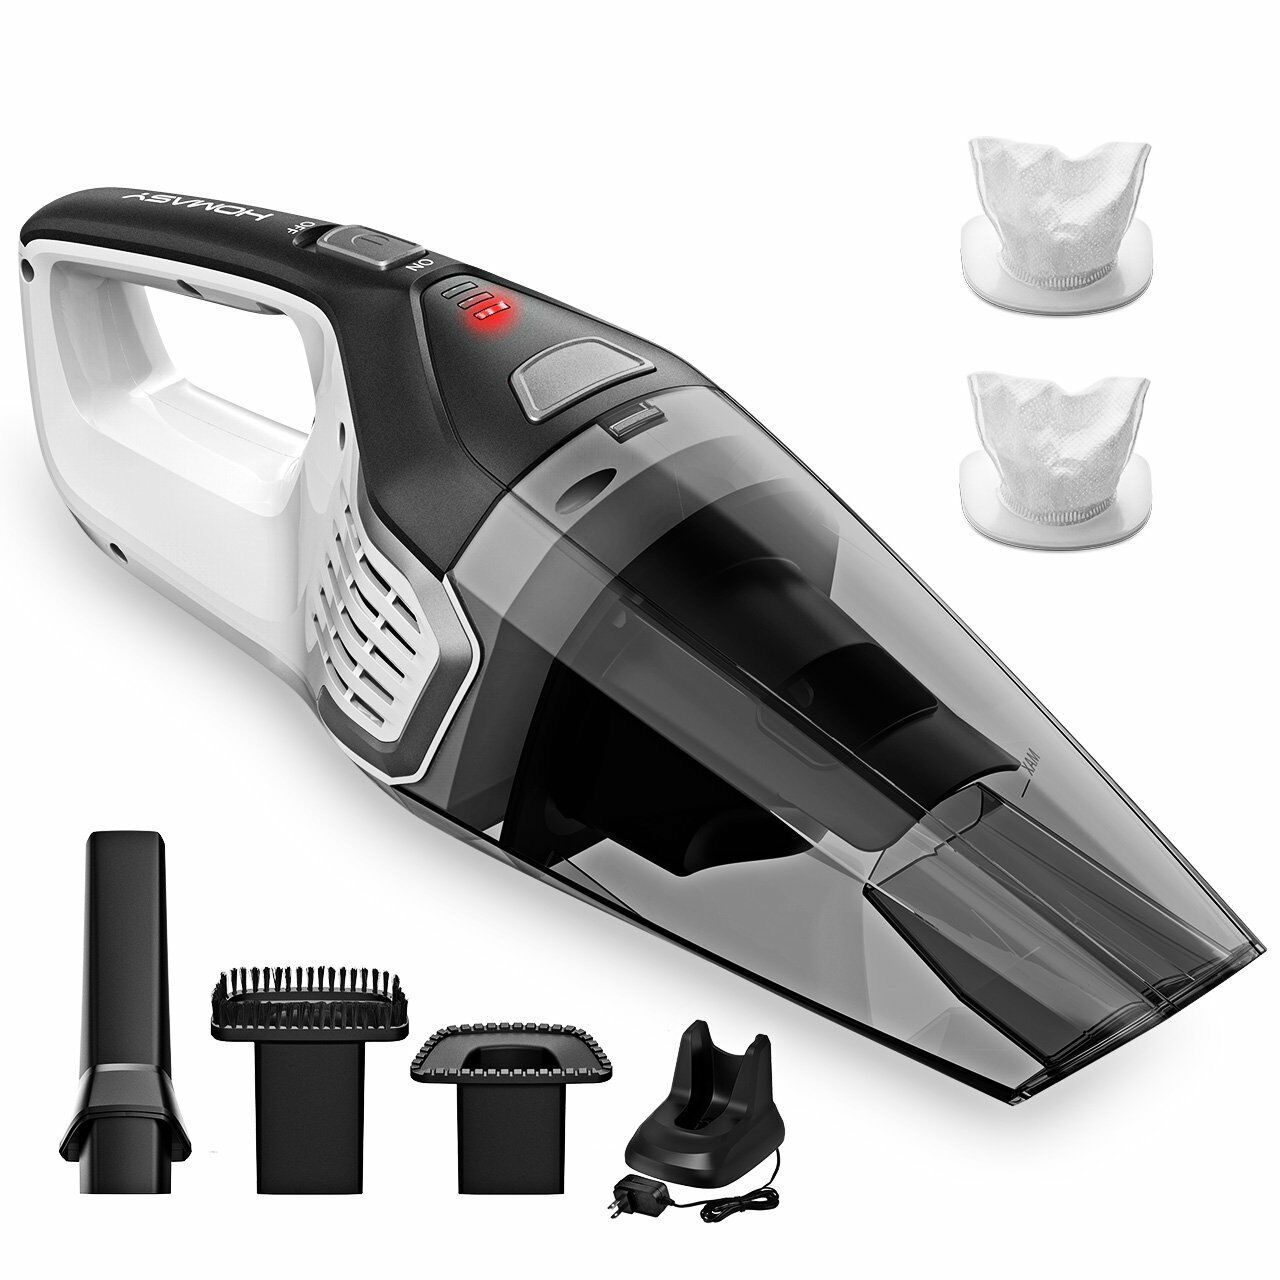 Homasy Rechargeable Handheld Vacuum Cordless, Powerful Cyclonic Suction Vacuum